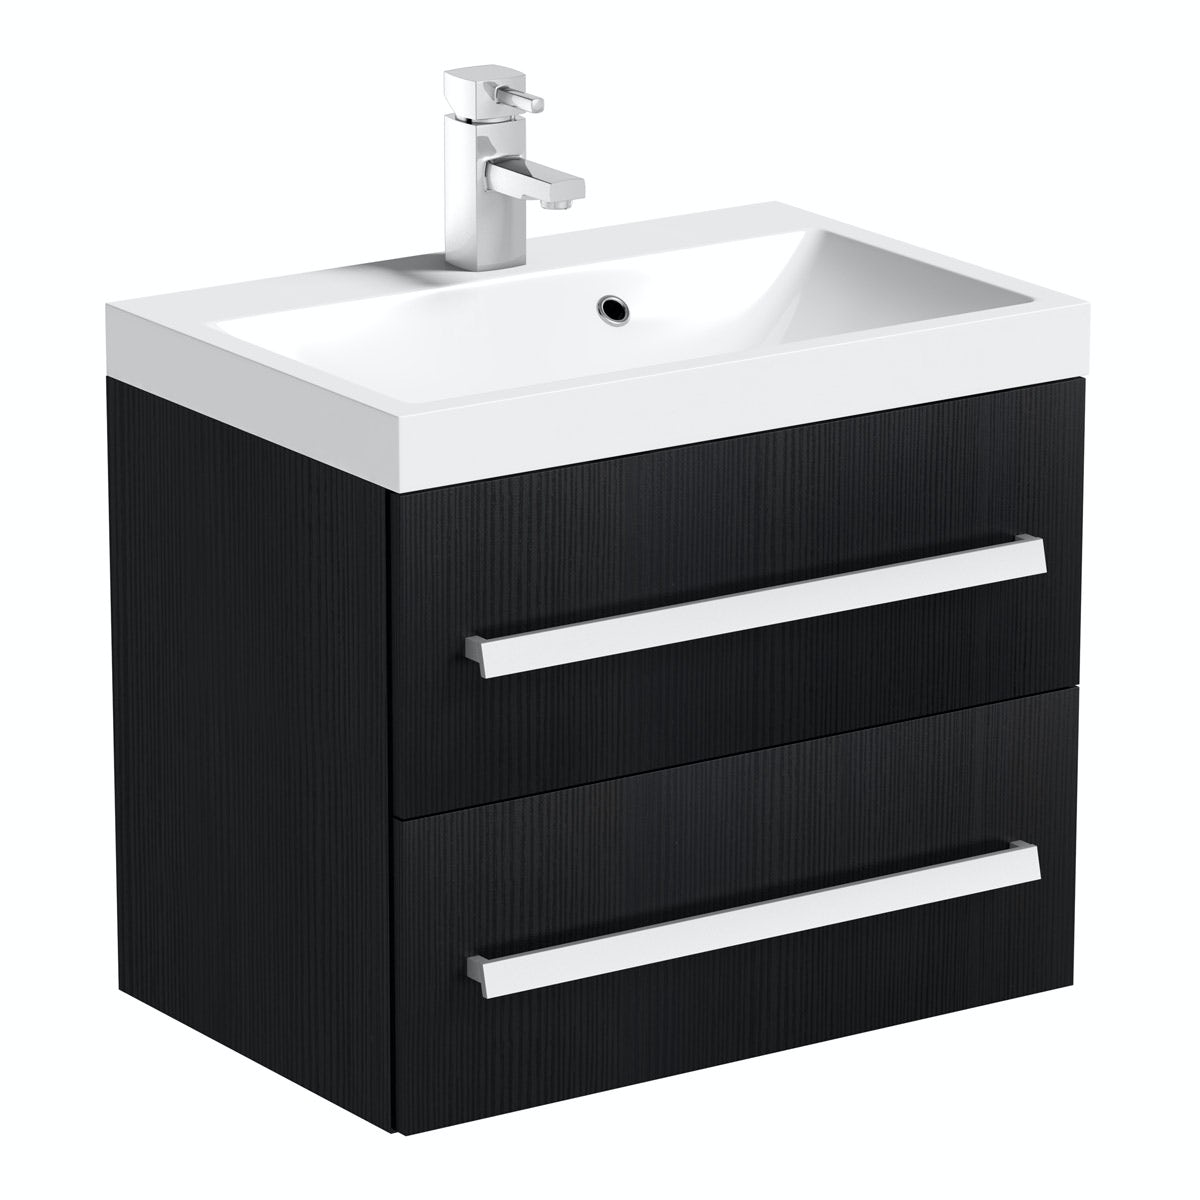 Victoria Plumb Showers >> Orchard Wye essen wall hung vanity unit with basin 600mm | VictoriaPlum.com